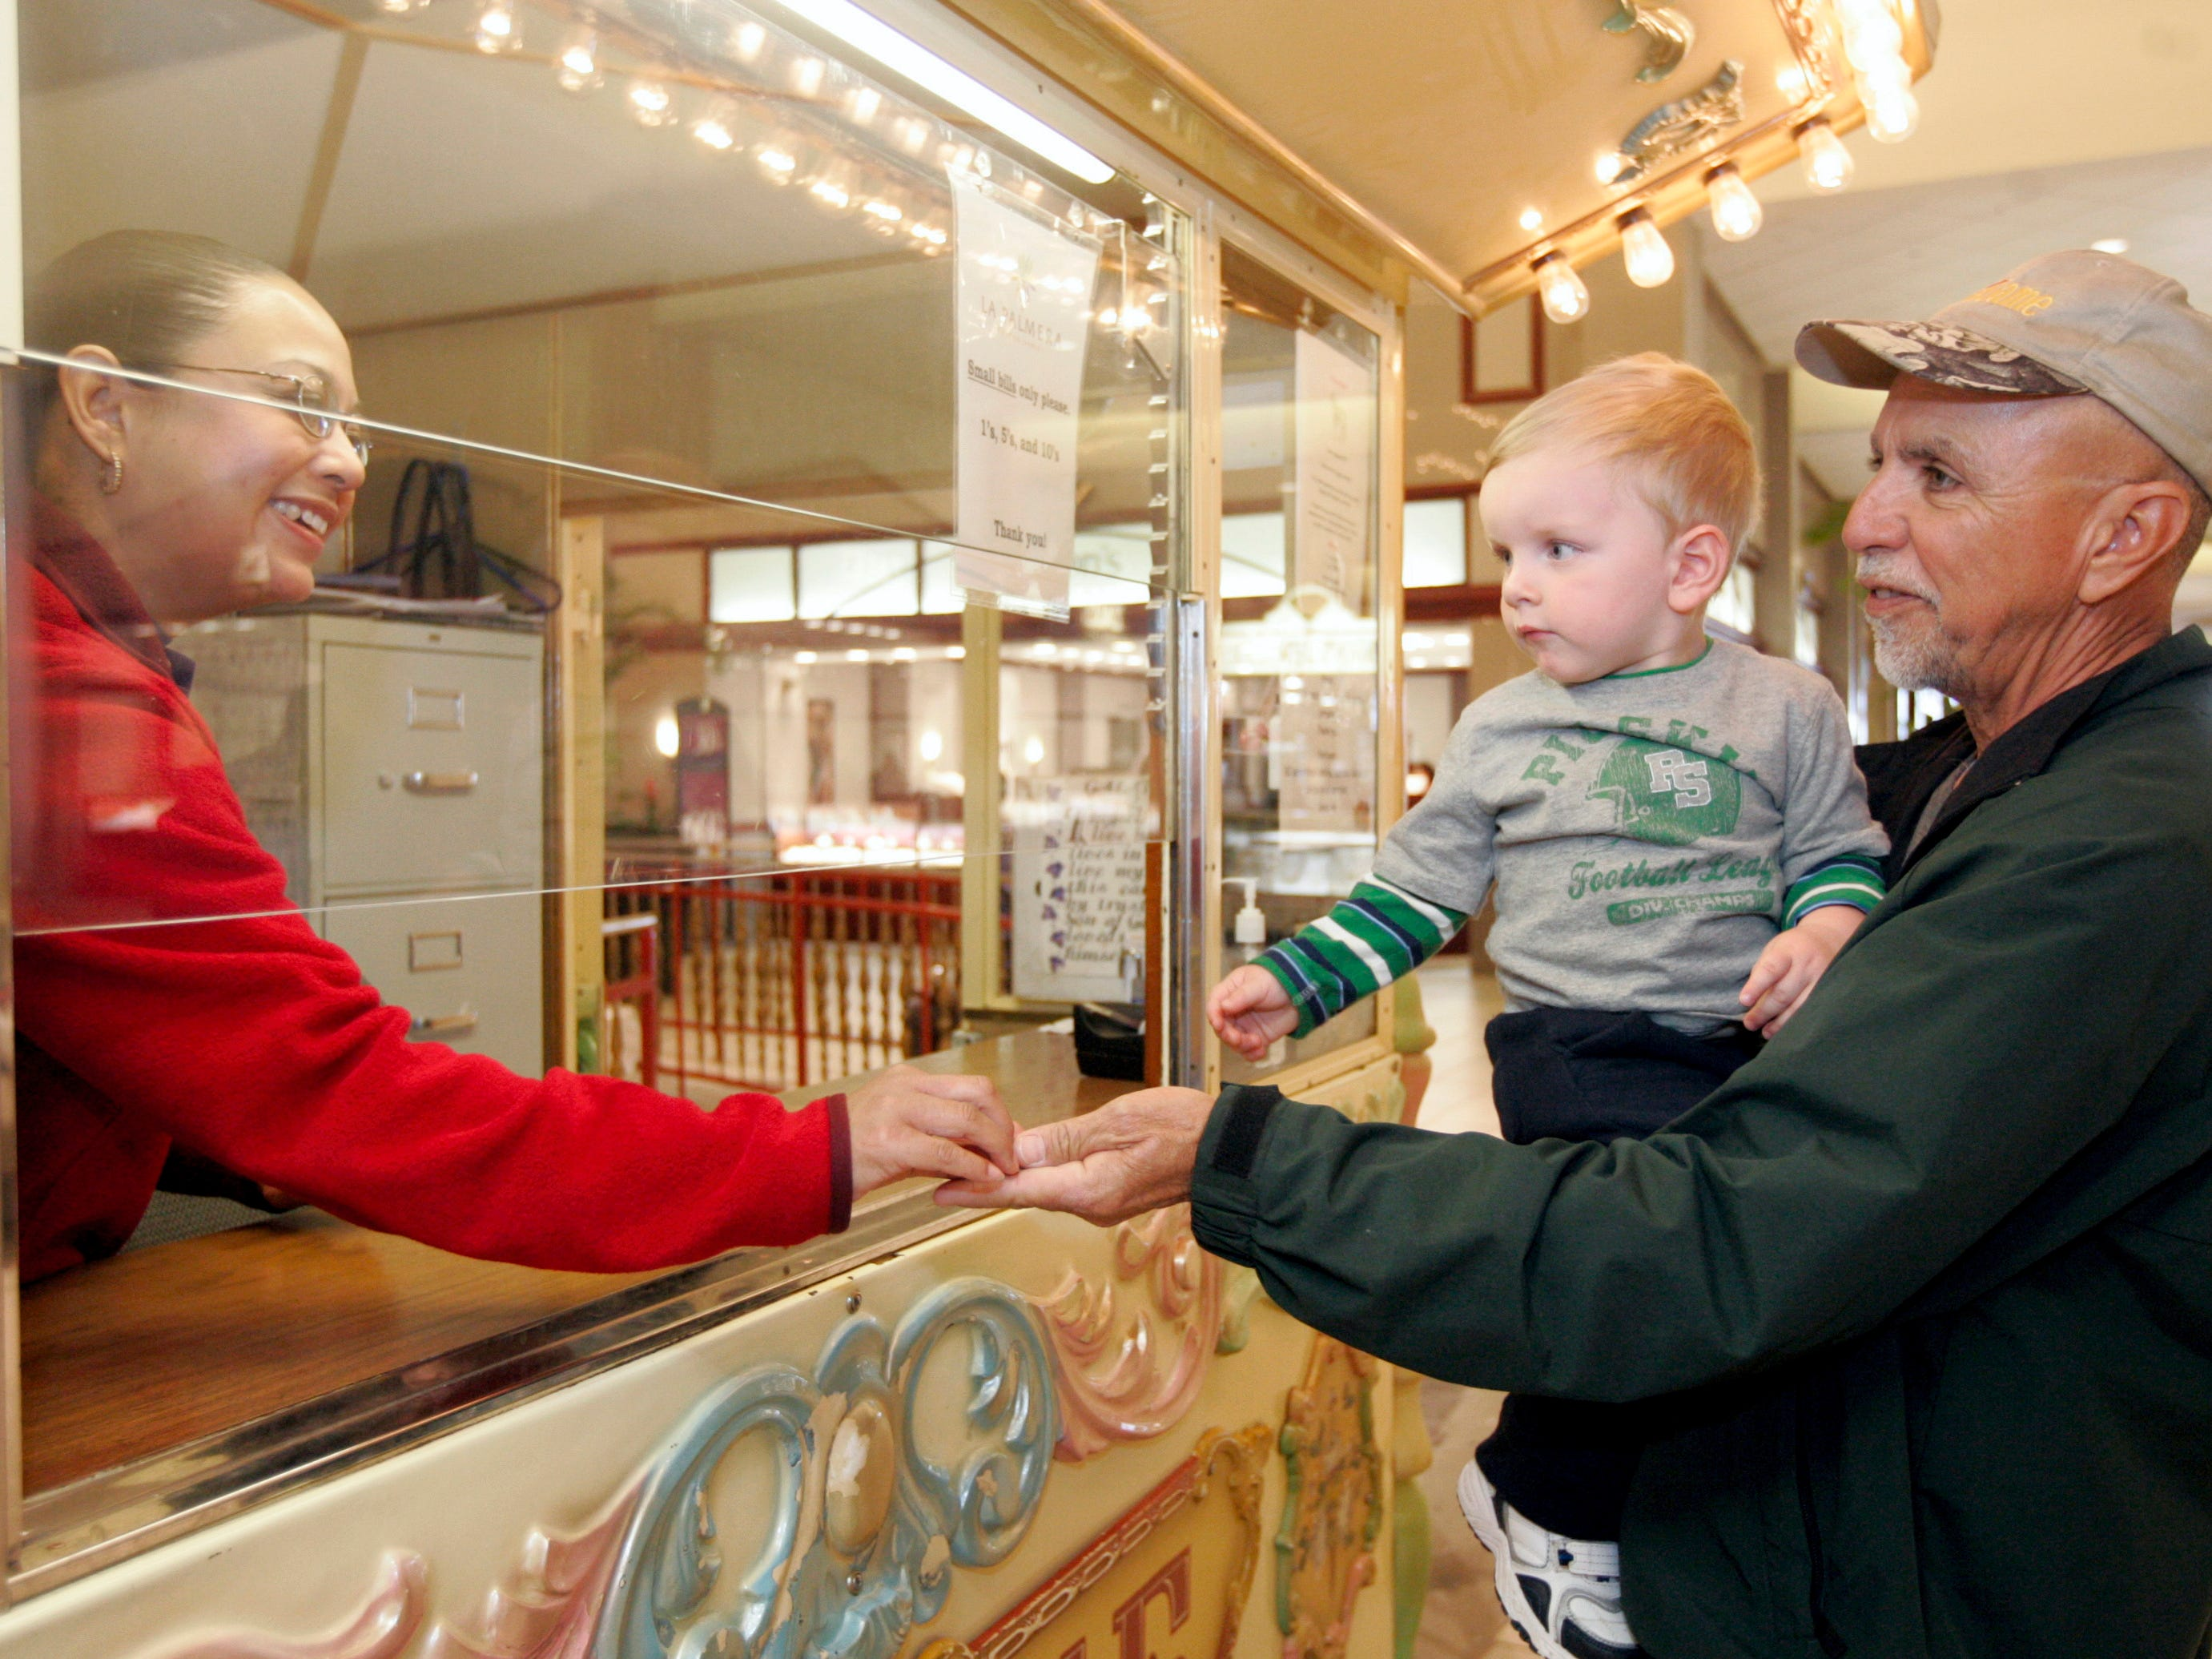 Carousel operator Yvonne Guerero (left) hands Joe Rodriguez of Corpus Christi his change as he and his grandson, 20-month-old Michael Ryan Rodriguez, get ready to ride Wednesday, Jan. 14, 2008 at La Palmera mall in Corpus Christi. Joe Rodriguez said it was his grandson's fourth time to ride that morning.